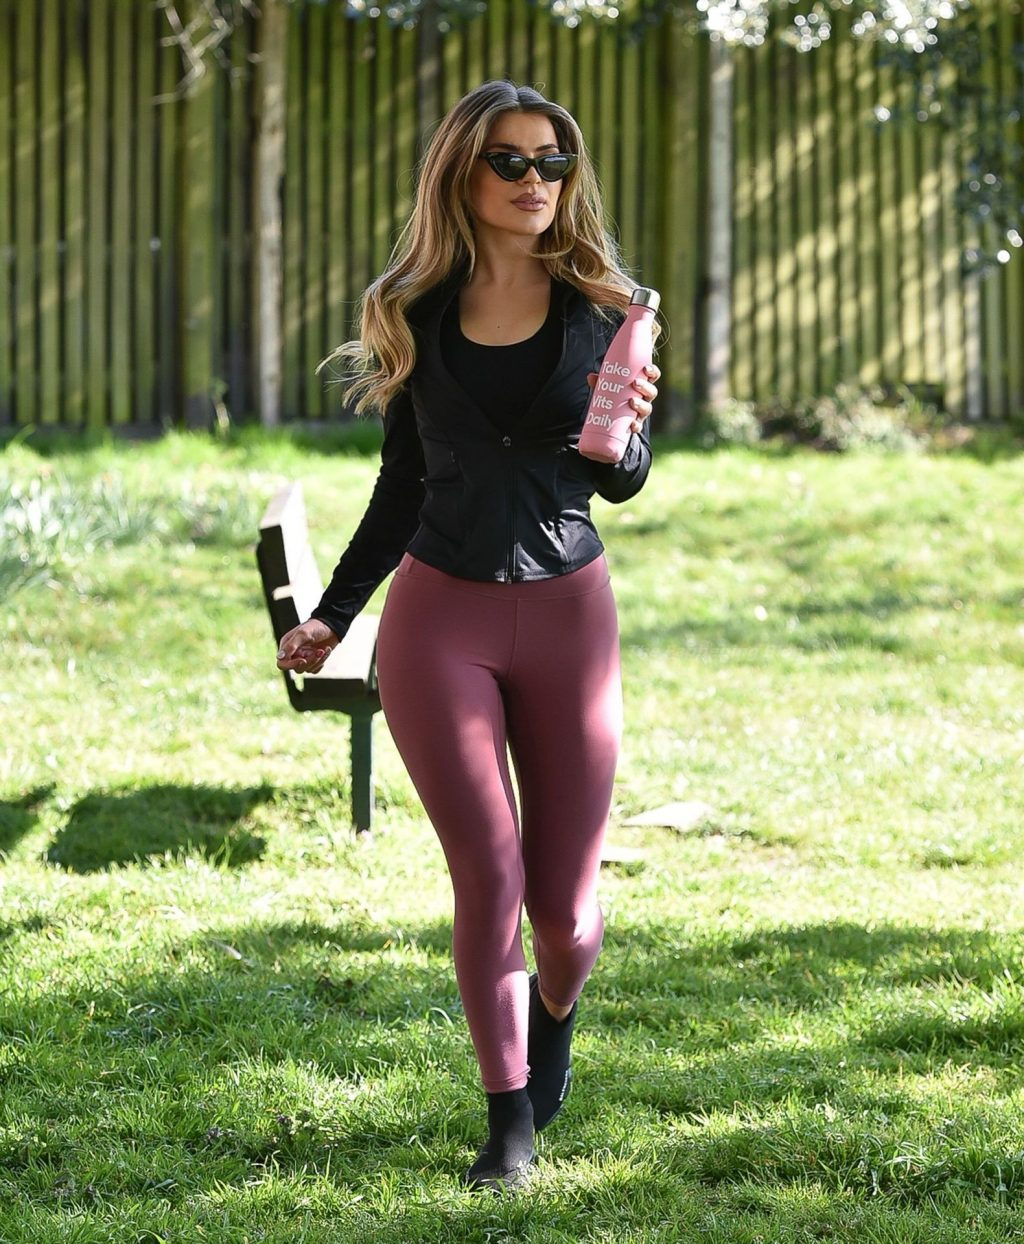 Maria Wild is Seen Doing Her Daily Exercise at a Park in London (28 Photos)